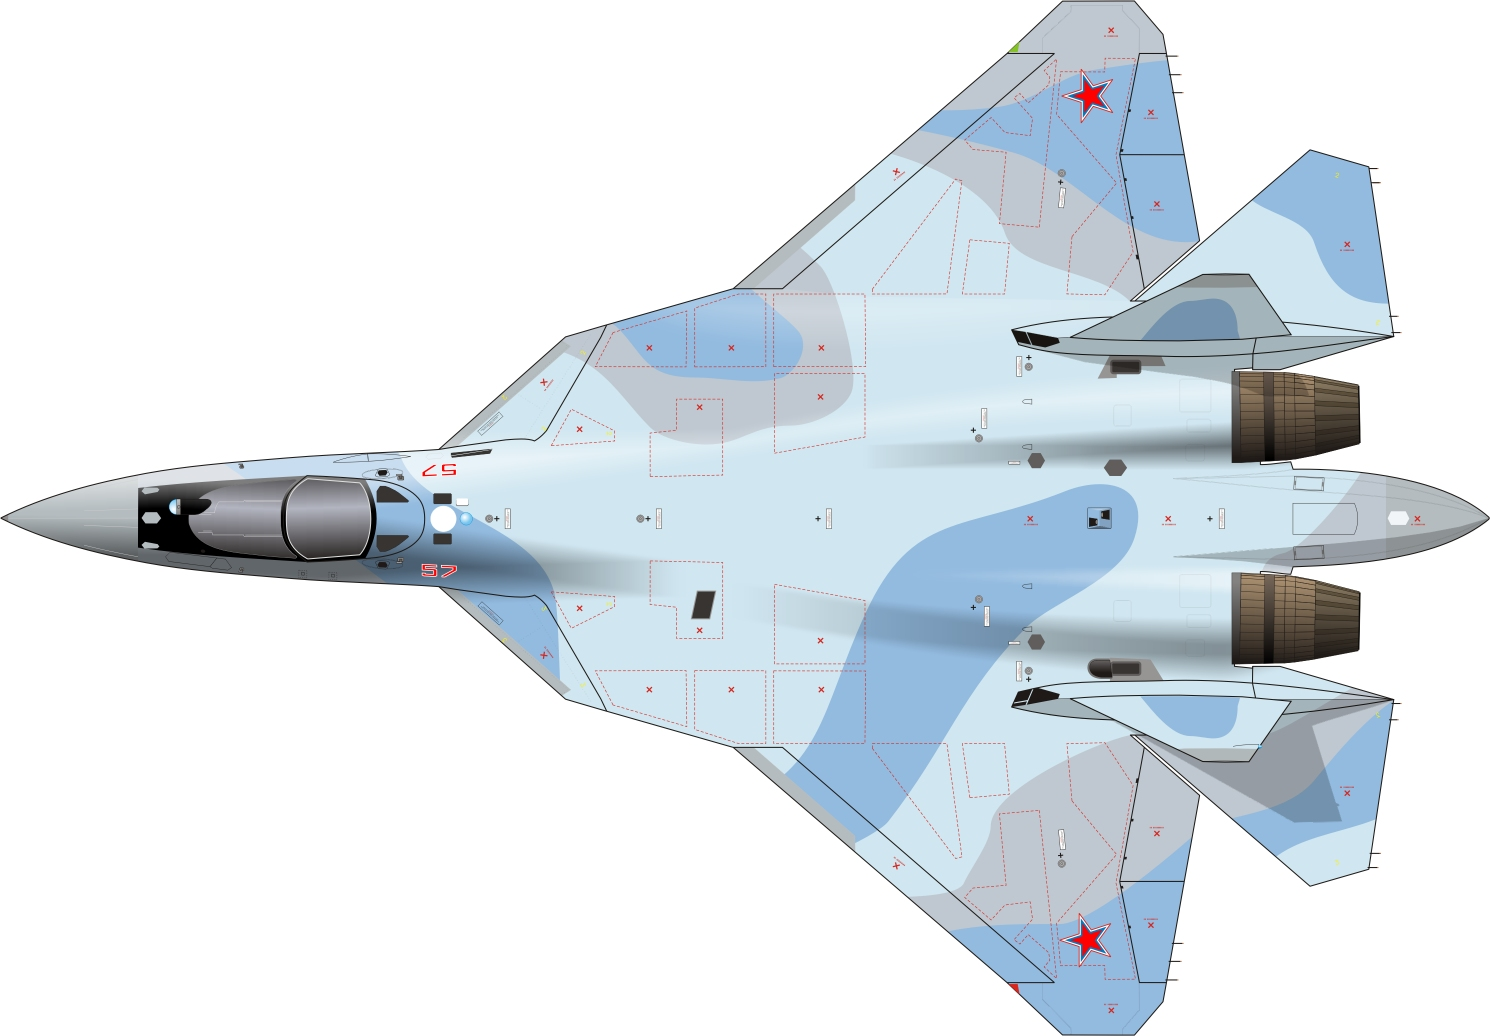 Sukhoi Su-57 fictious camouflage